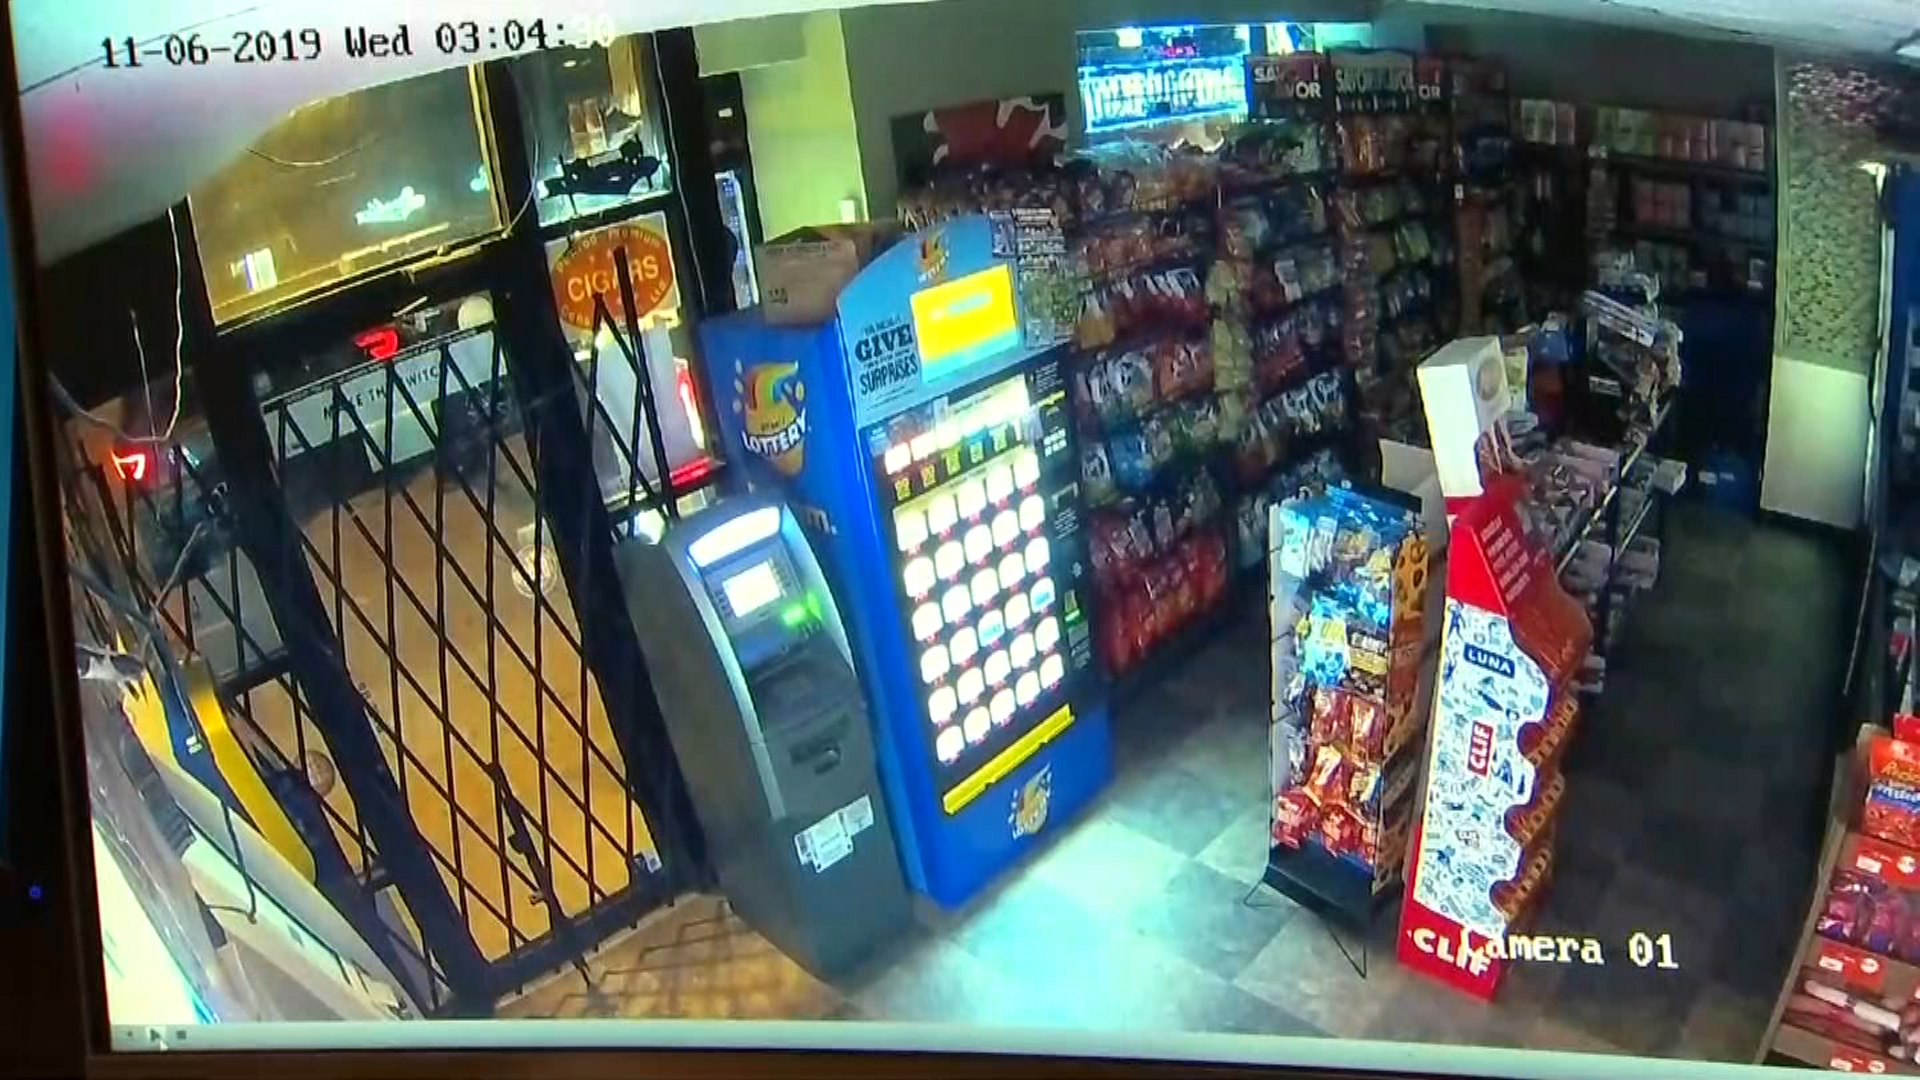 Surveillance Video Captures Group Stealing ATM